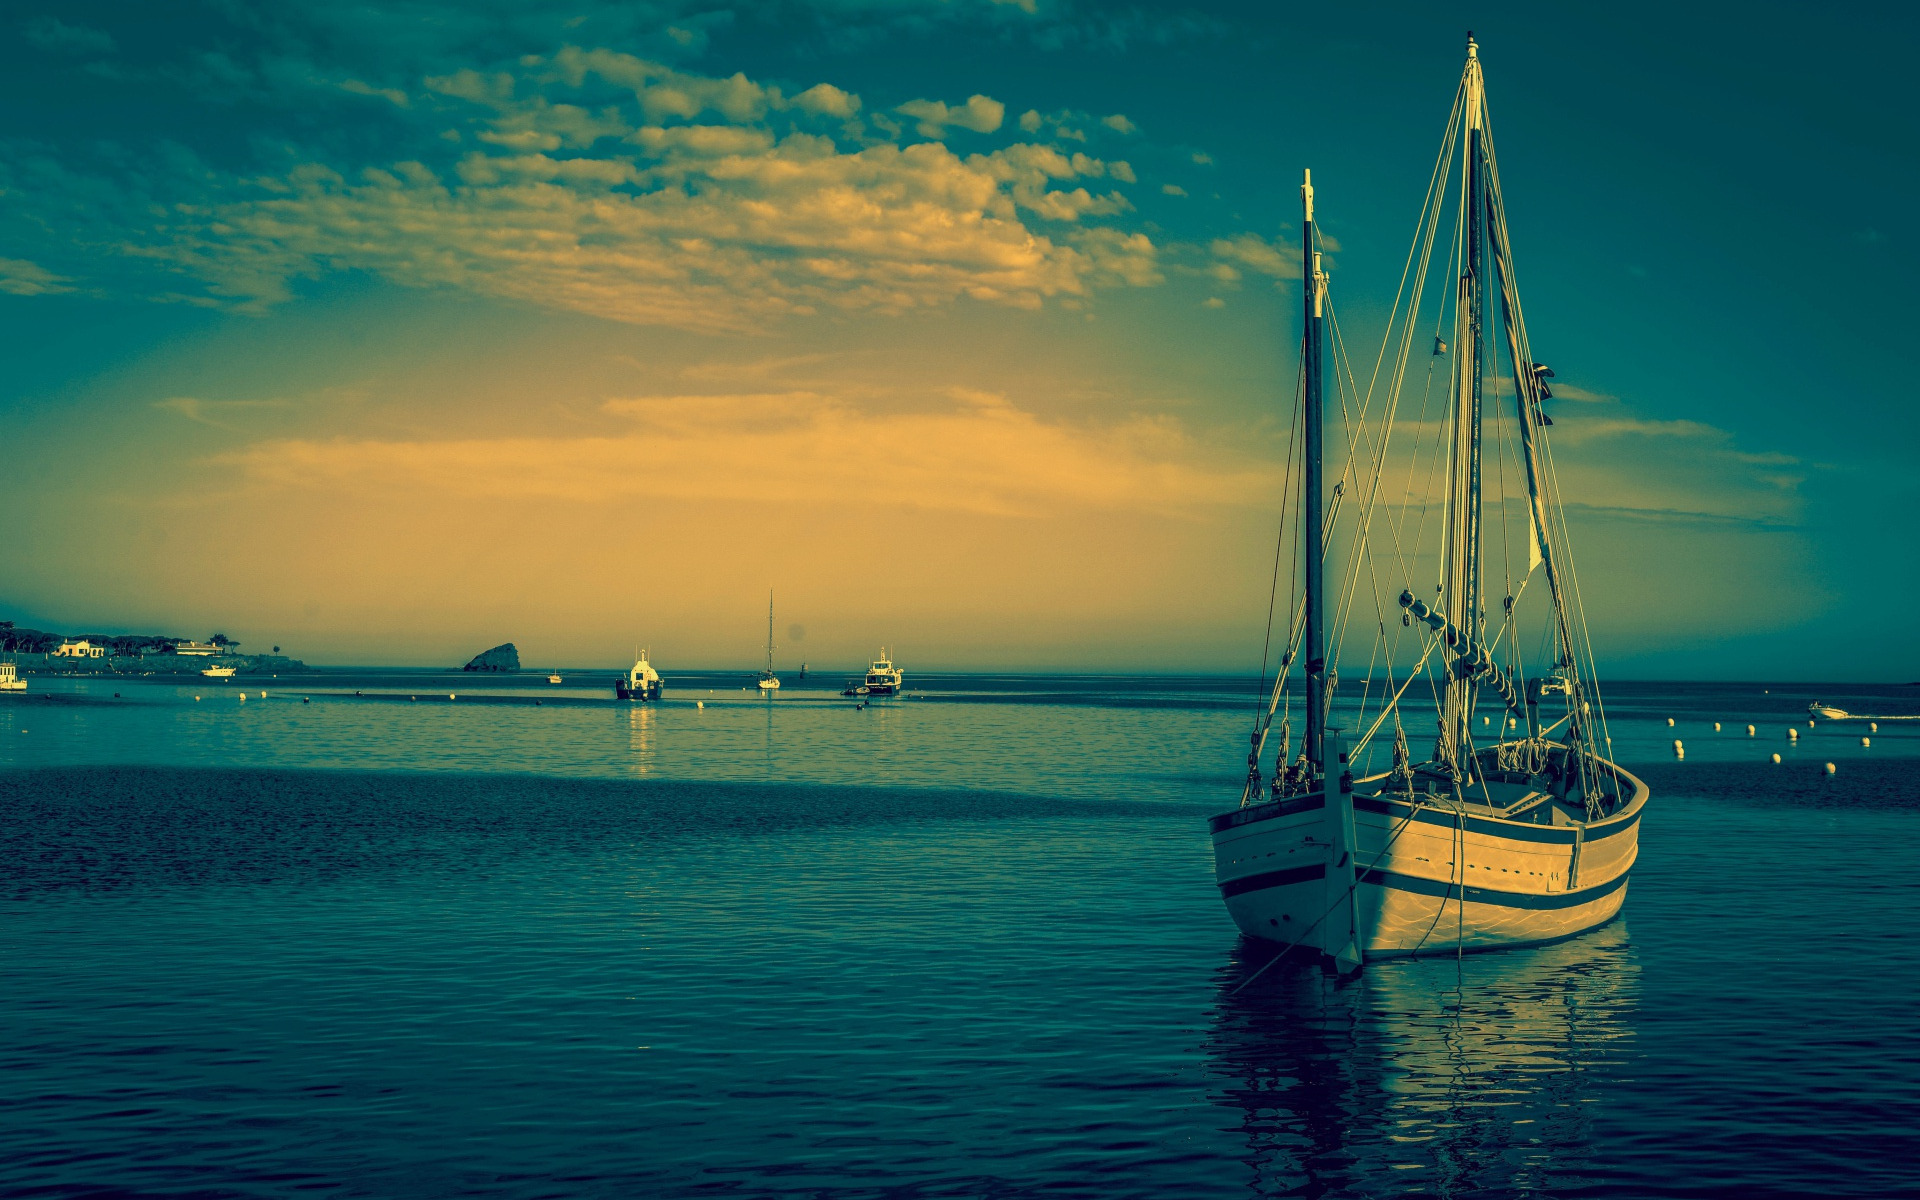 white yacht, sea, sunset, evening, seascape, summer